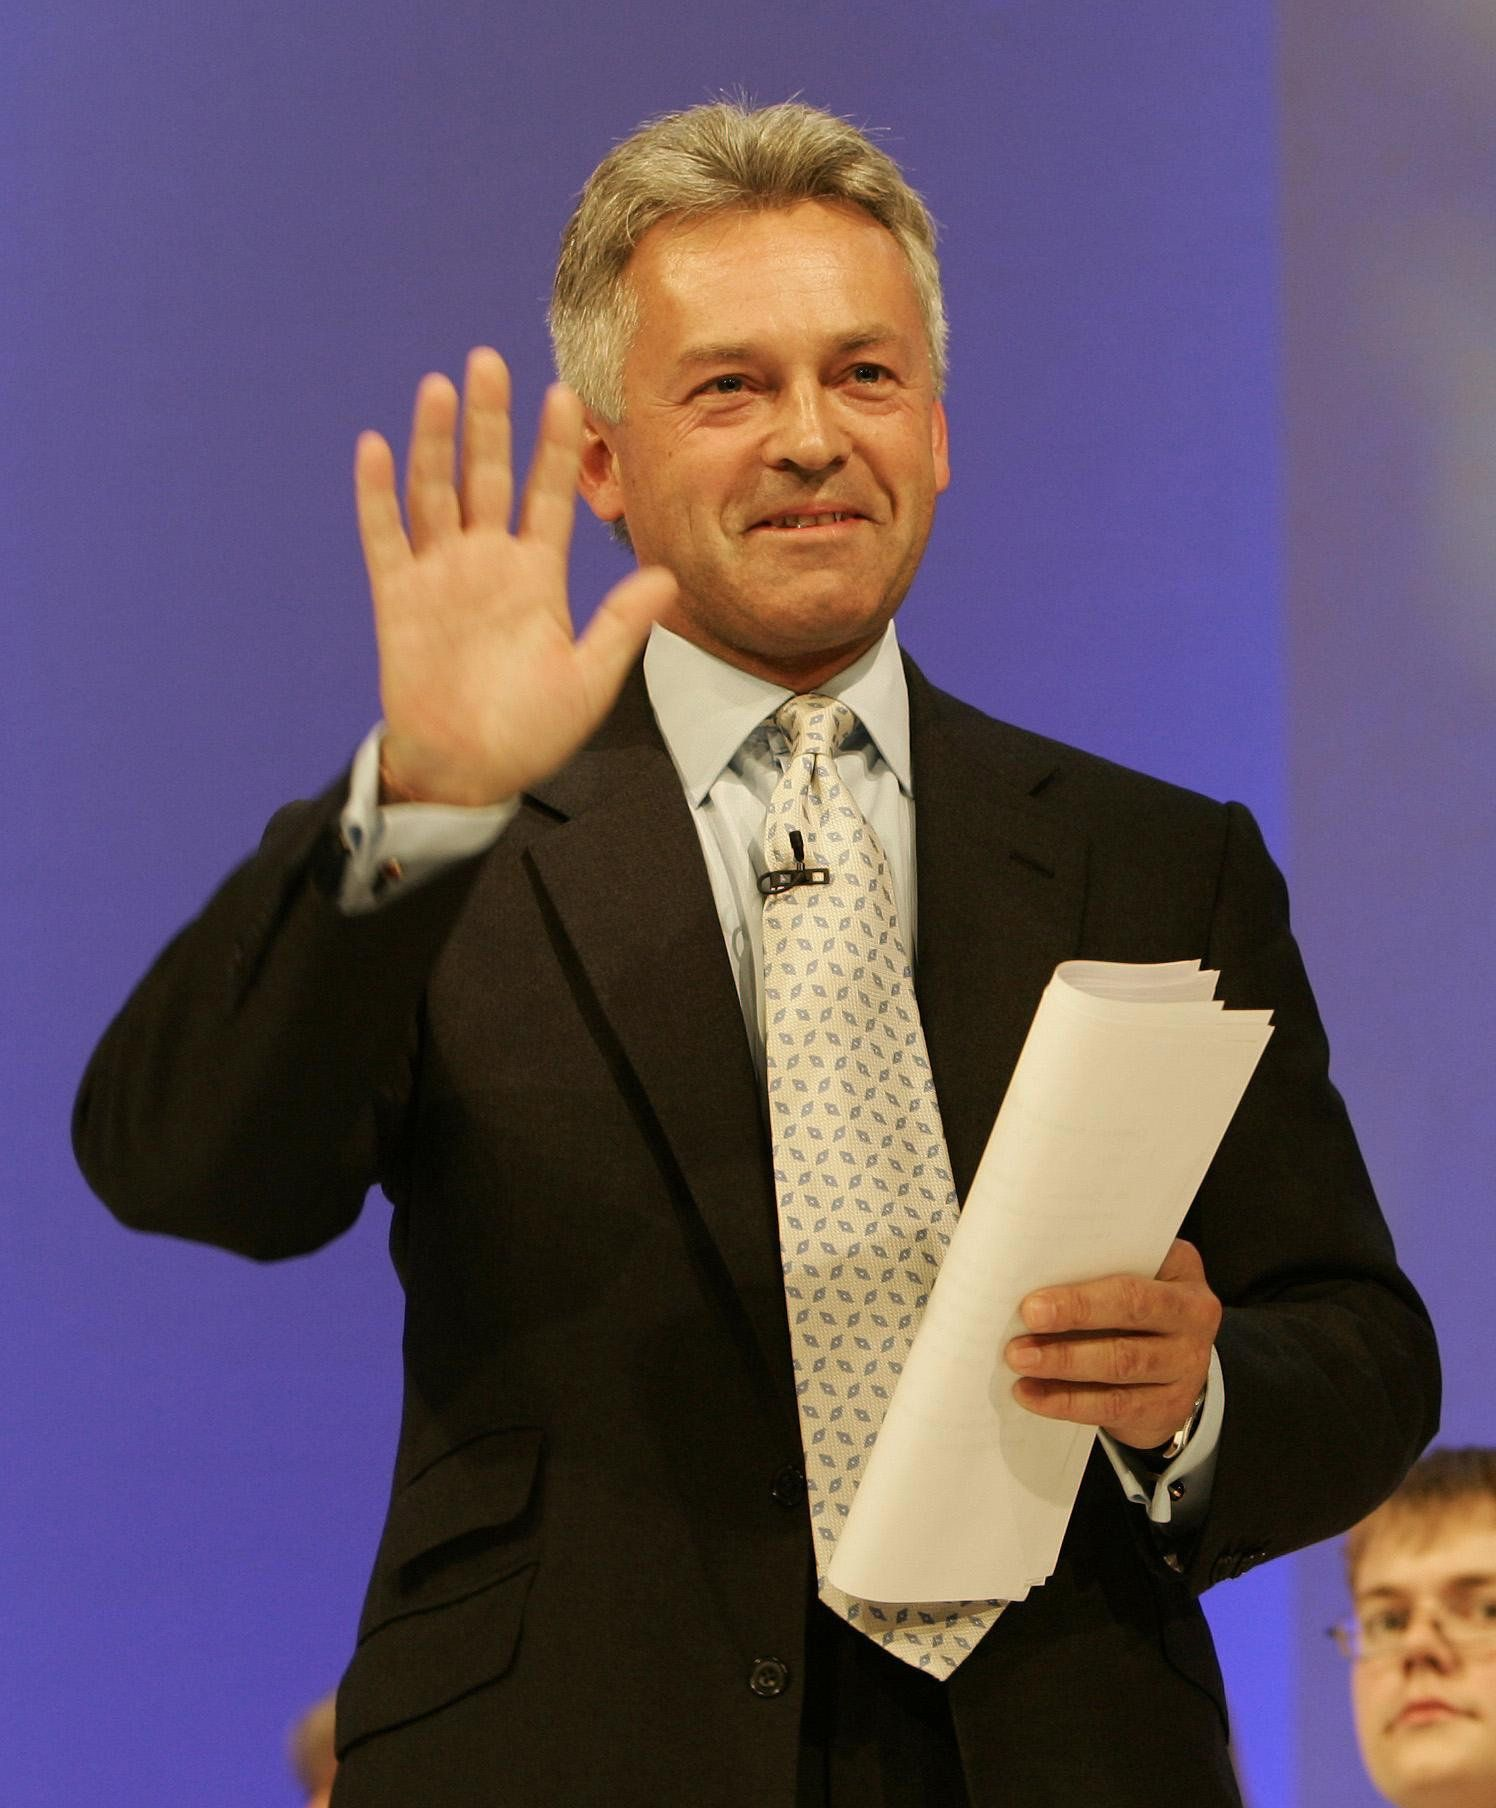 Alan Duncan, Who Criticised Caroline Lucas Over Hurricane Climate Change Comments, Has Links To Oil